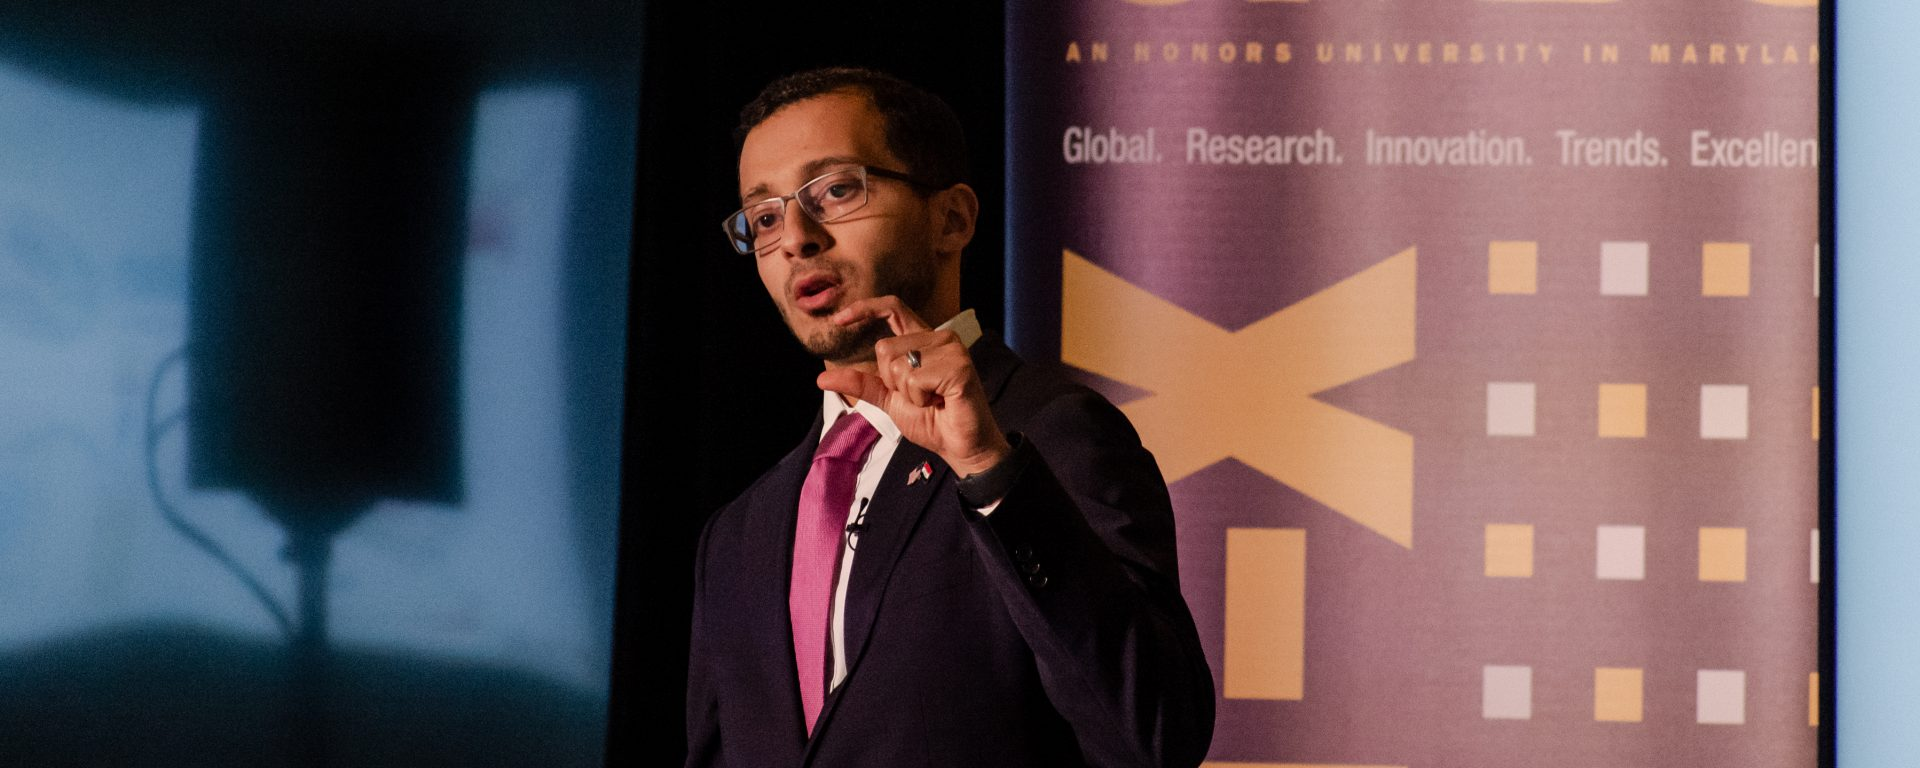 Ph.D. student Mustafa Al-Adhami wins national Three-Minute Thesis competition